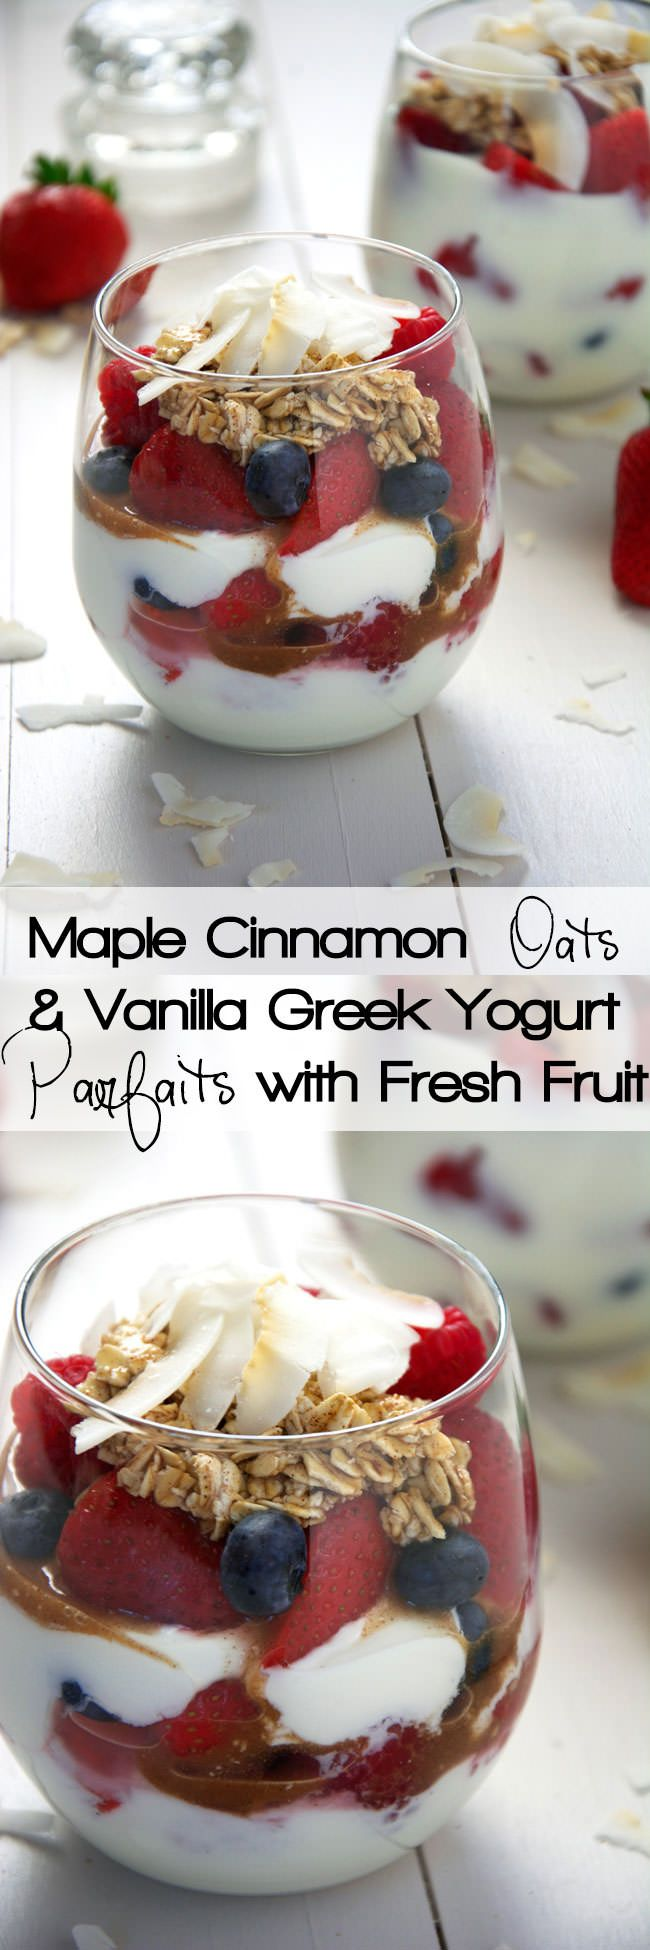 Fresh fruit, maple and cinnamon oats with creamy yogurt makes this parfait a simple make ahead, no brainer breakfast!